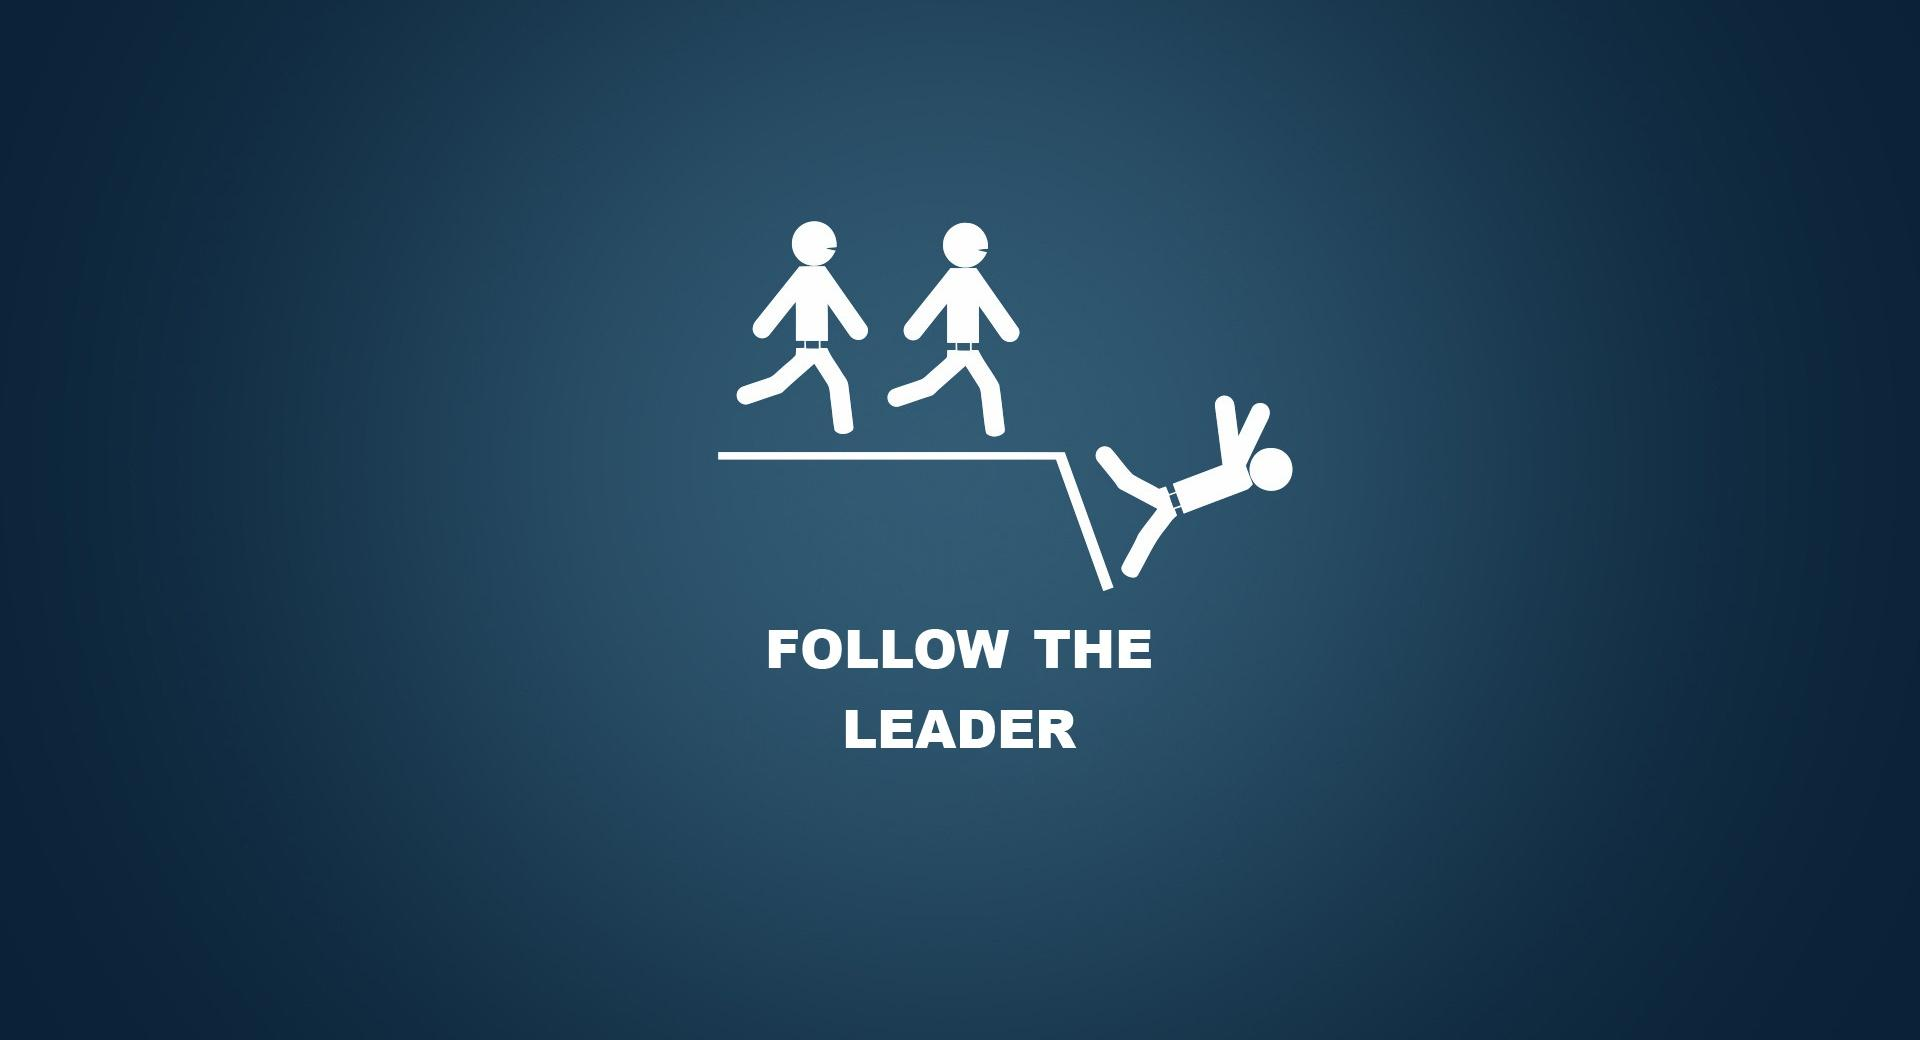 Follow the Leader wallpapers HD quality